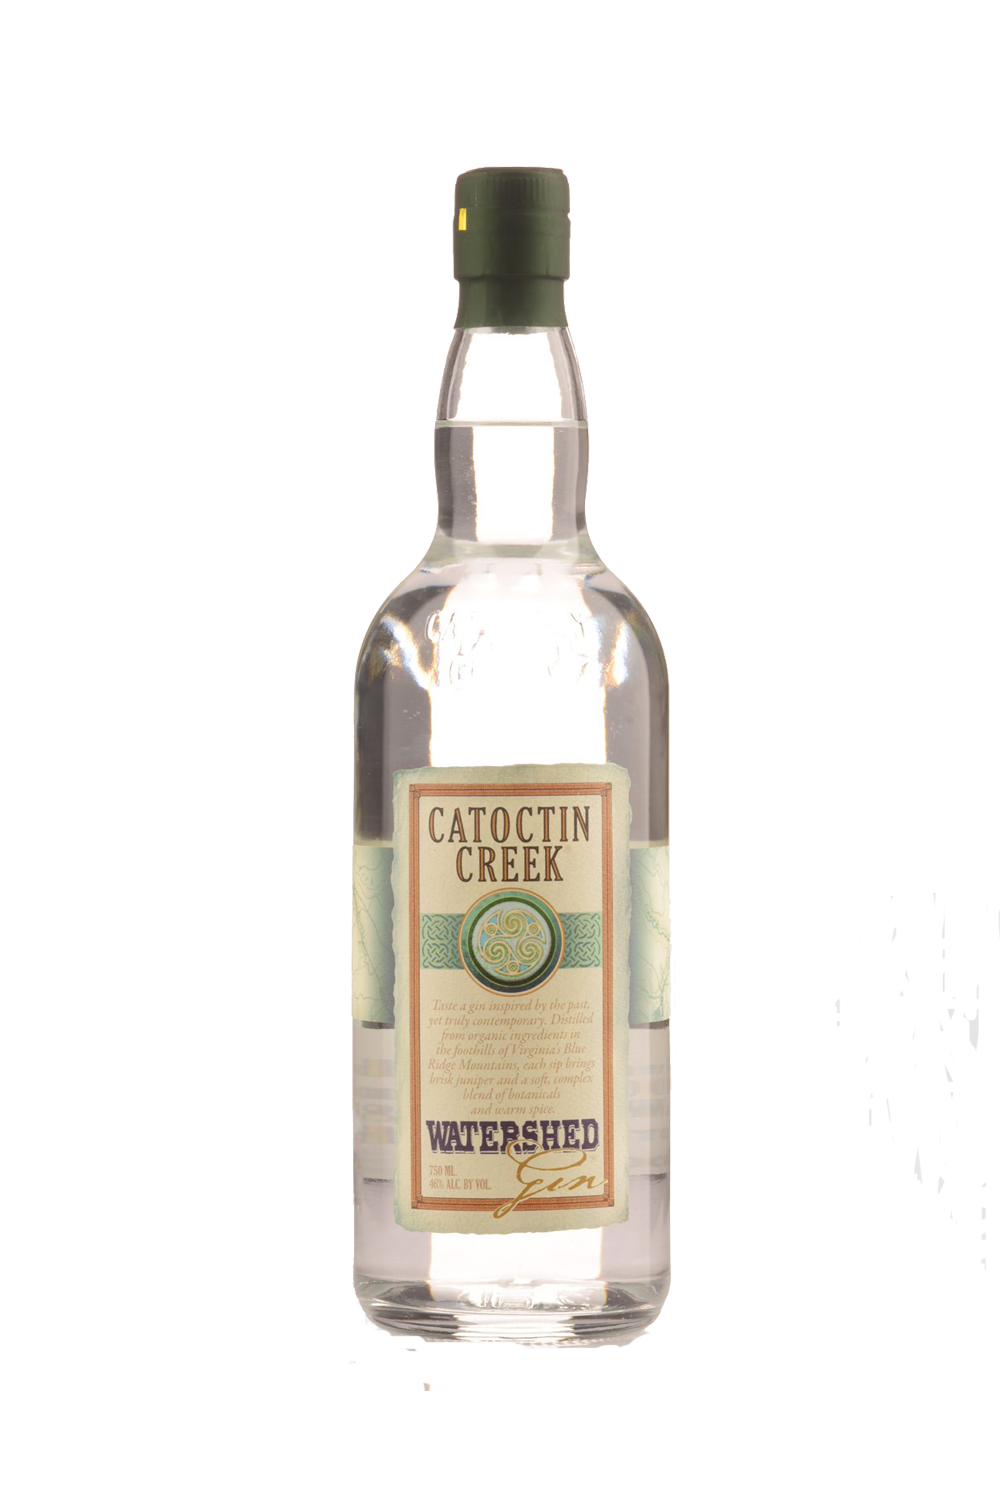 Catoctin Creek Watershed Gin